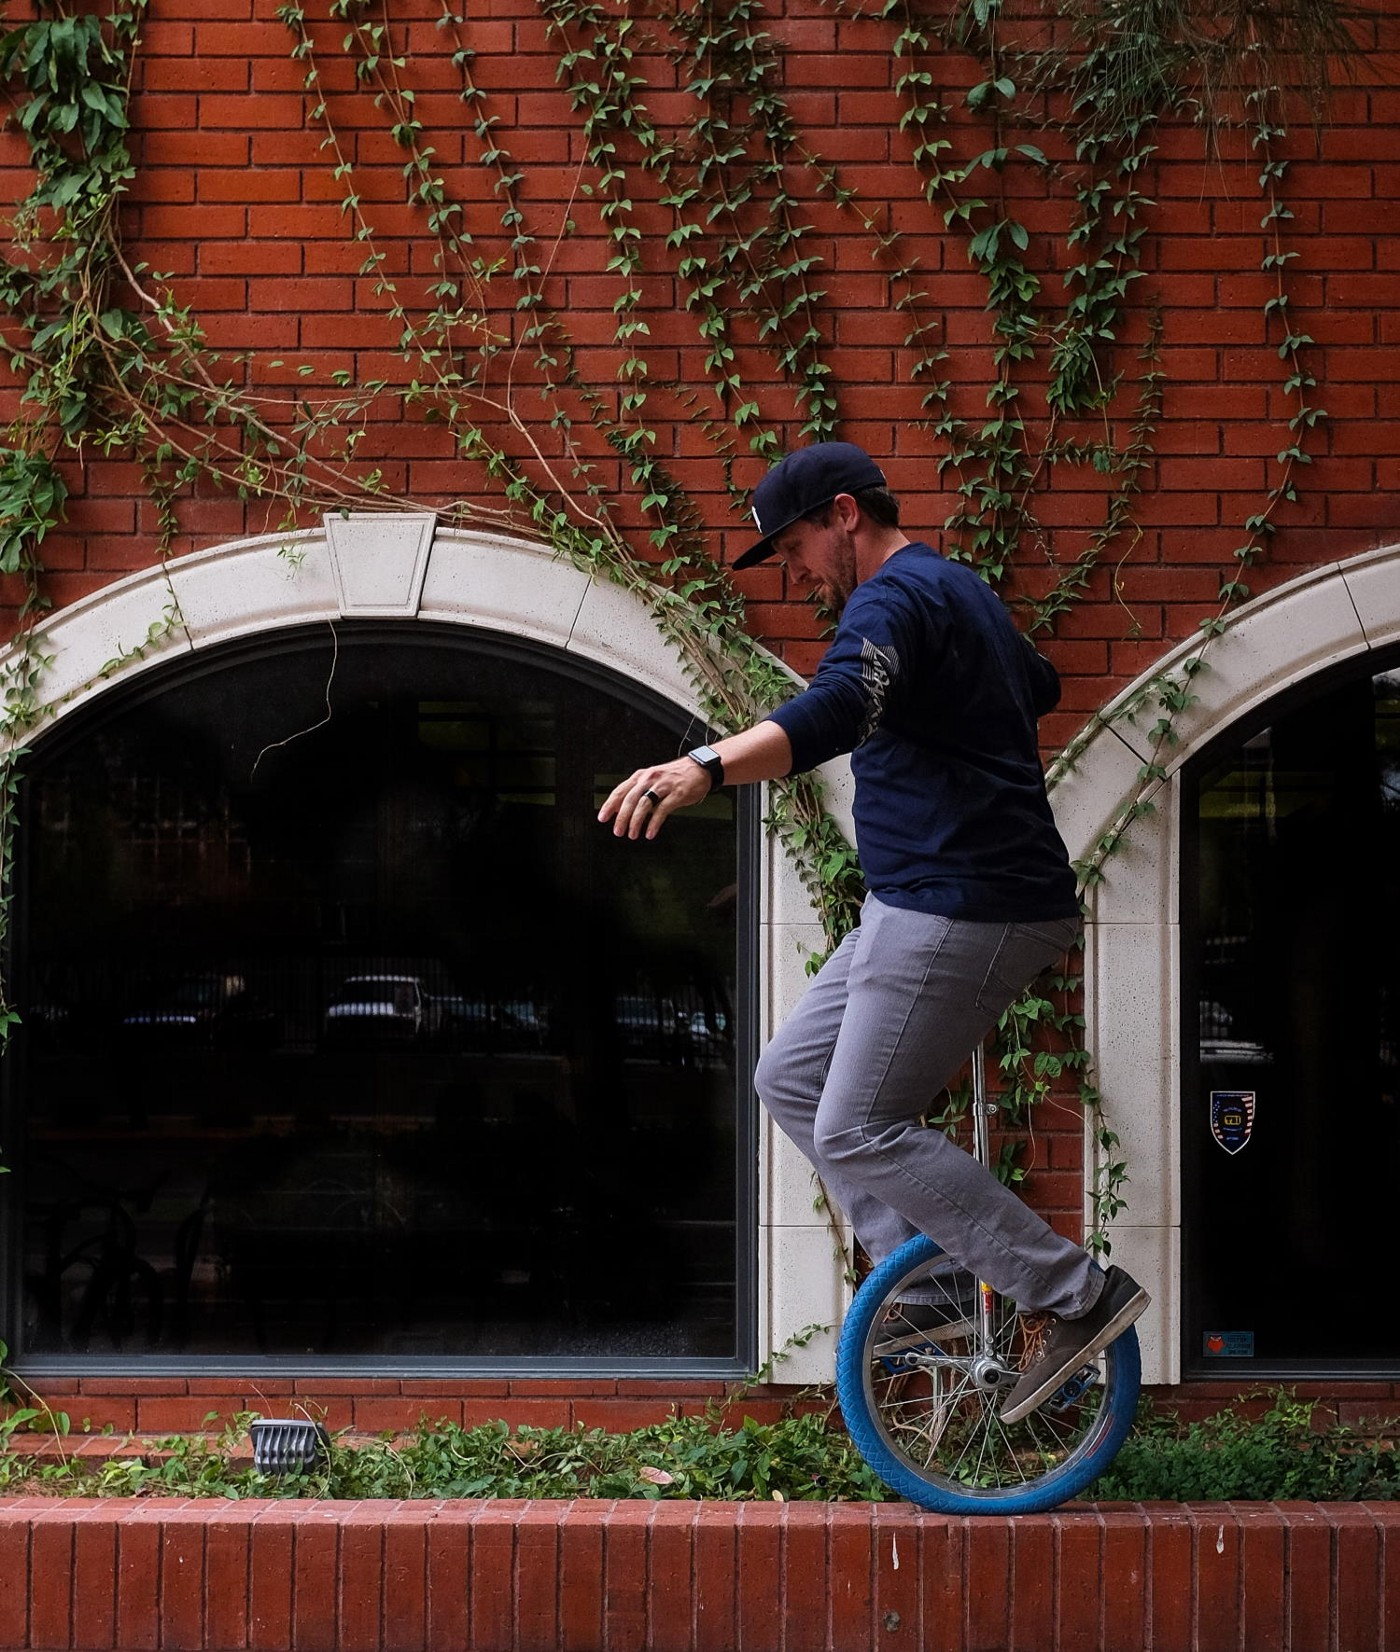 A man rides a blue unicycle atop a low brick wall